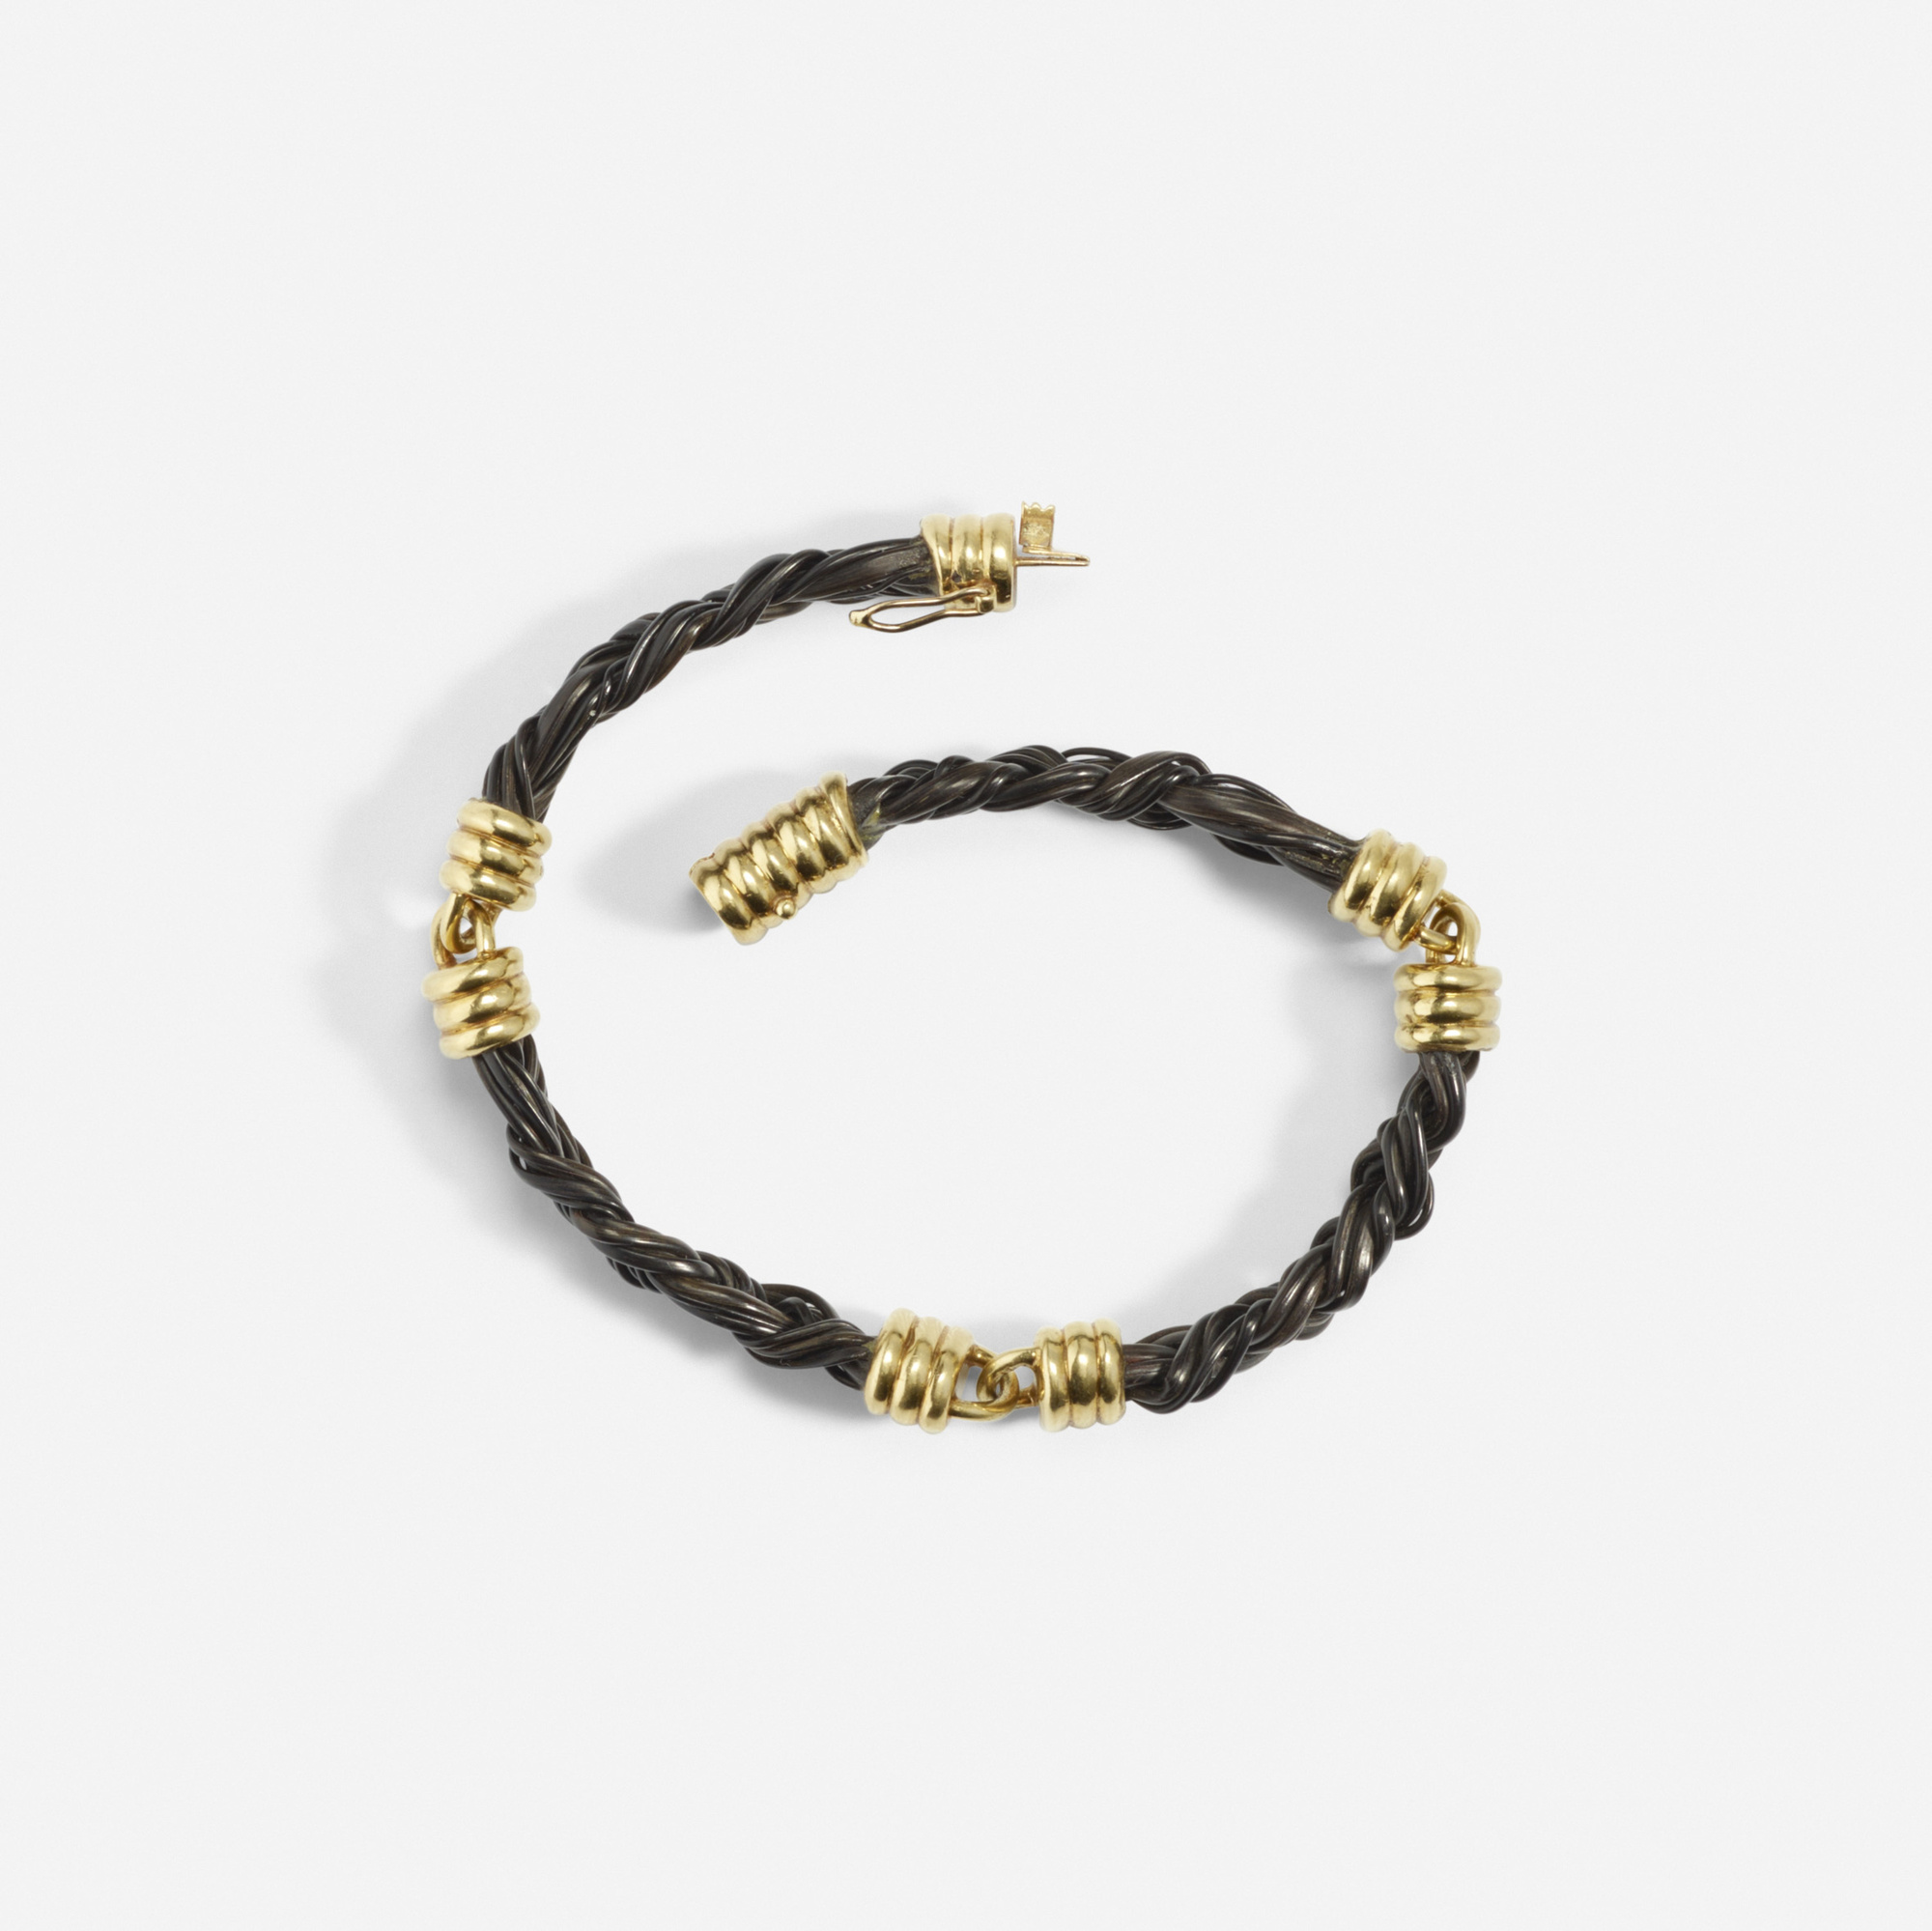 162: Cartier / A gold and elephant hair bracelet (2 of 2)